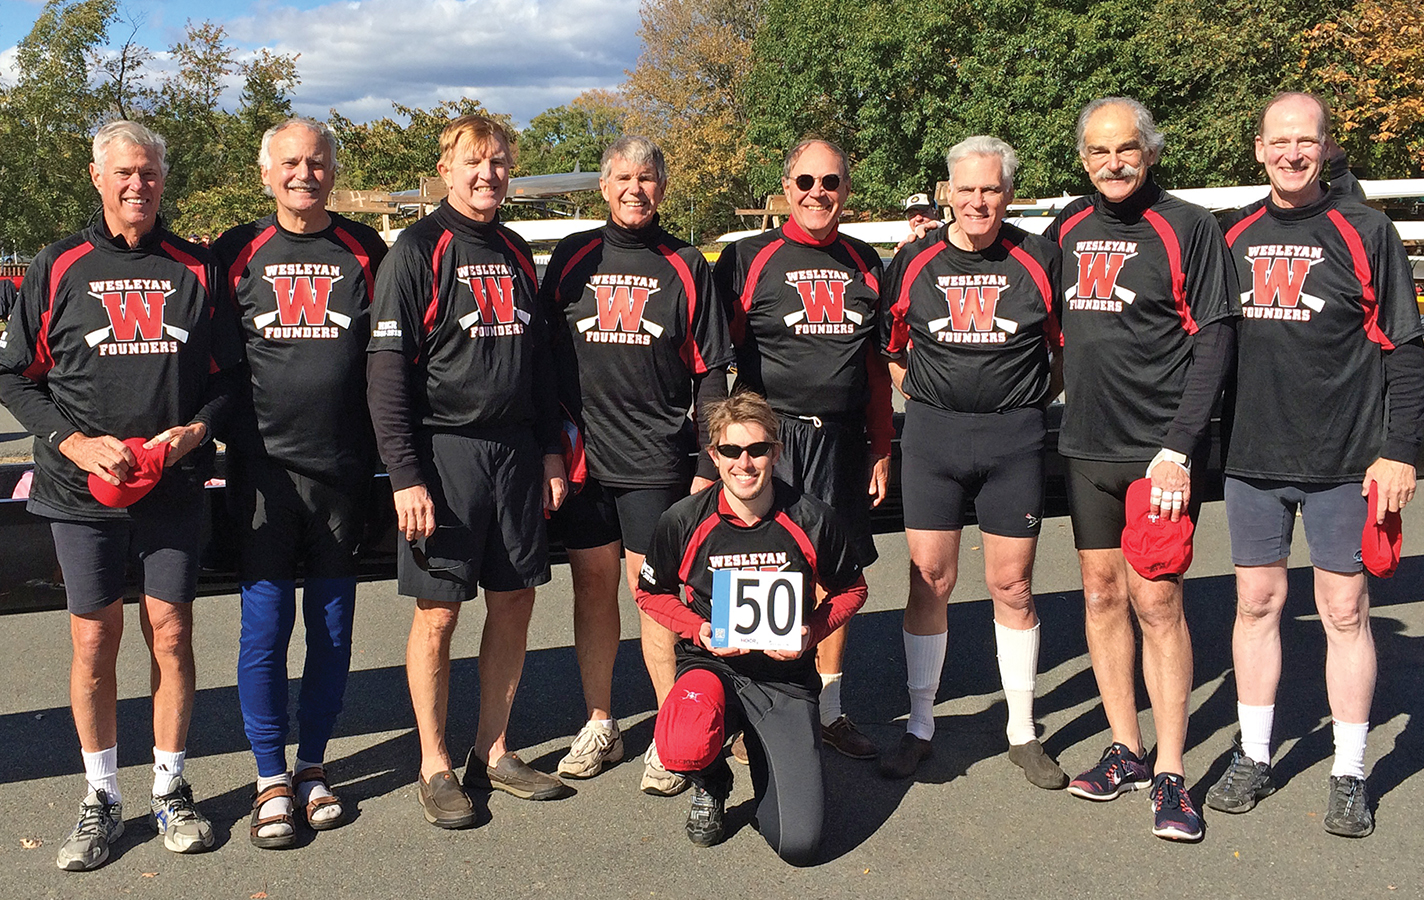 Photographed at the 2015 Head of the Charles, the Founders Group of Wesleyan Crew find the sport has brought them enduring friendships (left to right): Harrison Knight '68, Joe Kelly Hughes '67, Bill Nicholson '68, Wally Murfiit '68, Bob Svensk '68, Will Macoy '67, John Lipsky '68, Nason Hamlin'68, and, kneeling, cox George Bennum '09.